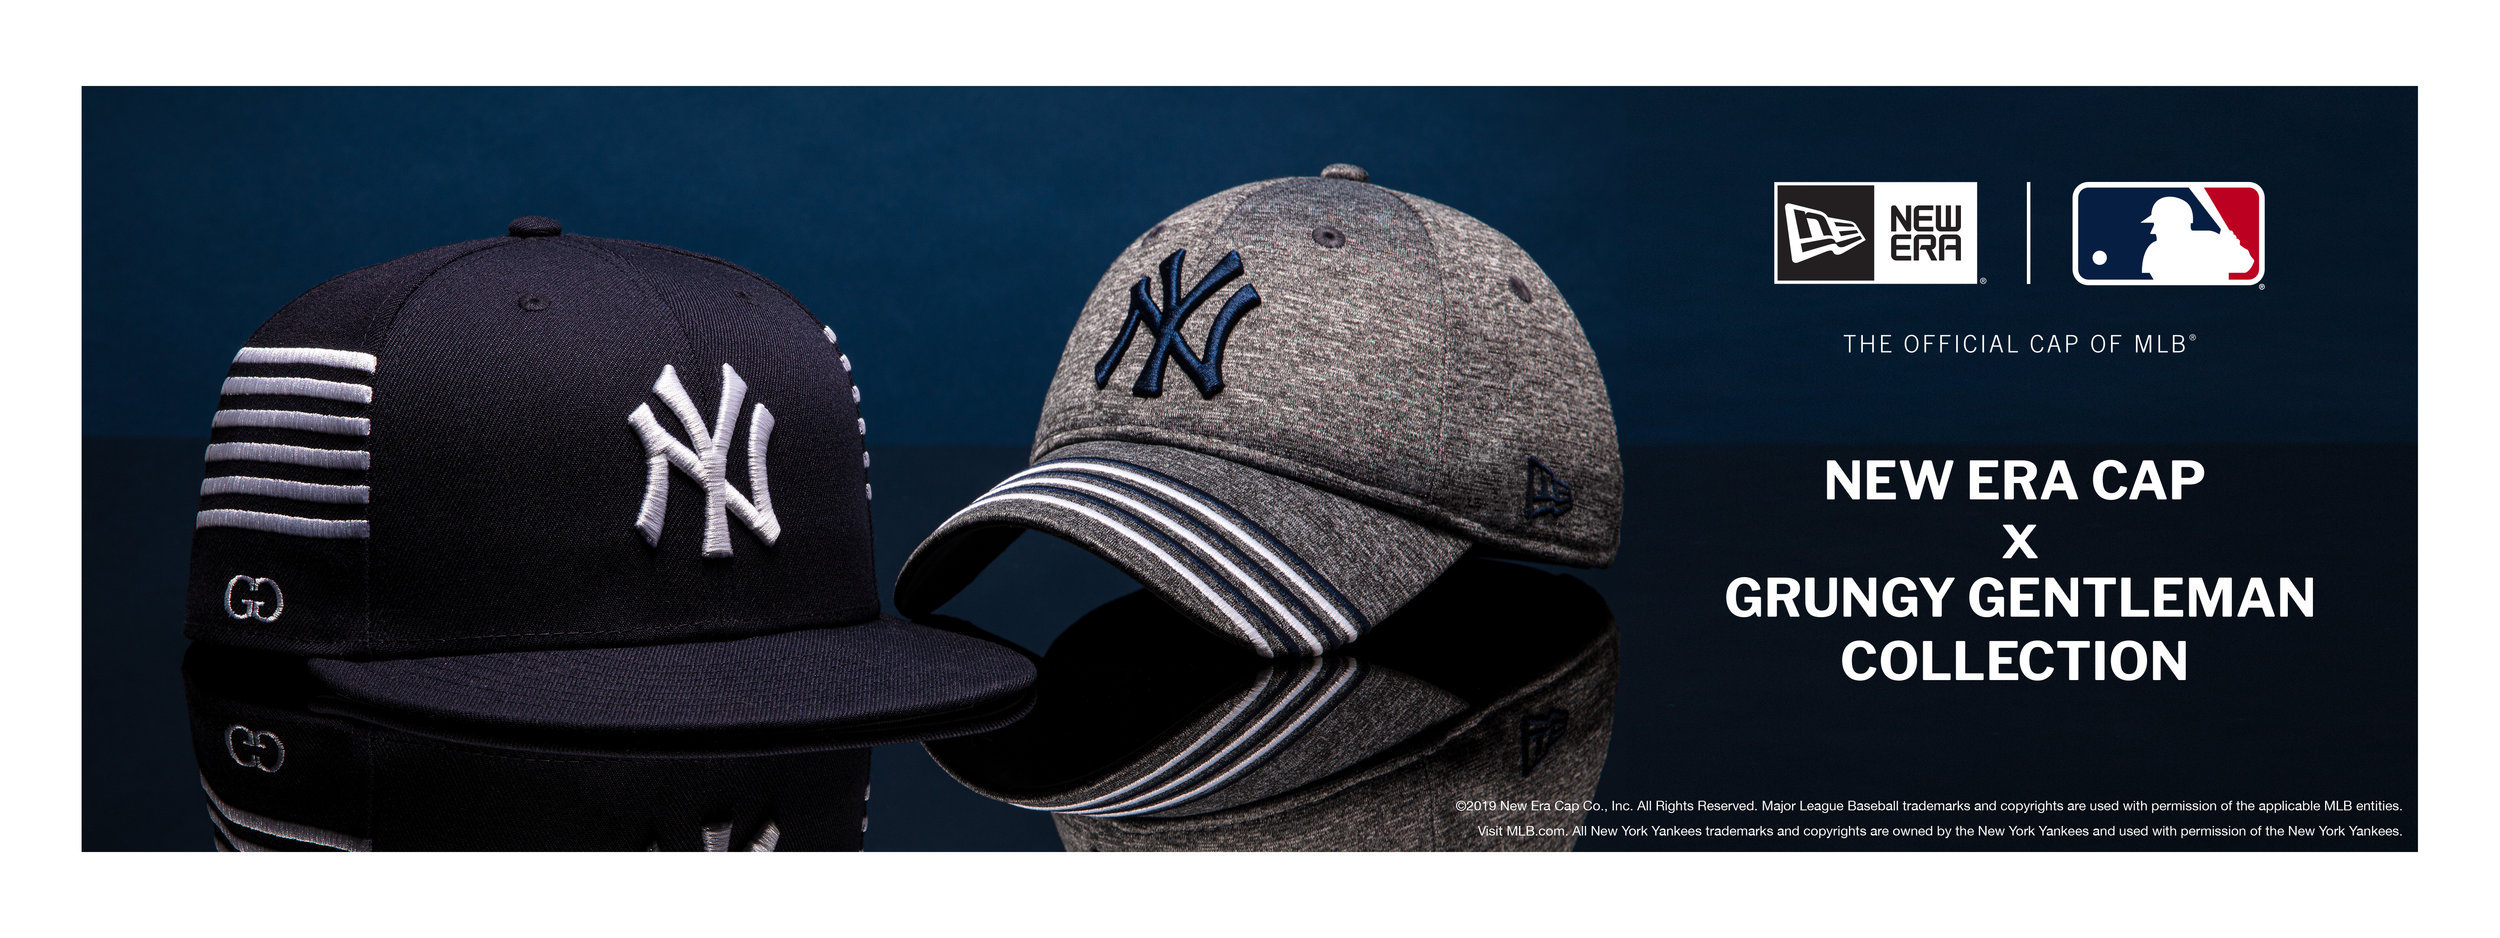 InVenue_2019_MLB_NewYorkYankees_Collaboration_GrungyGentleman_Digital_5760x2160.jpg